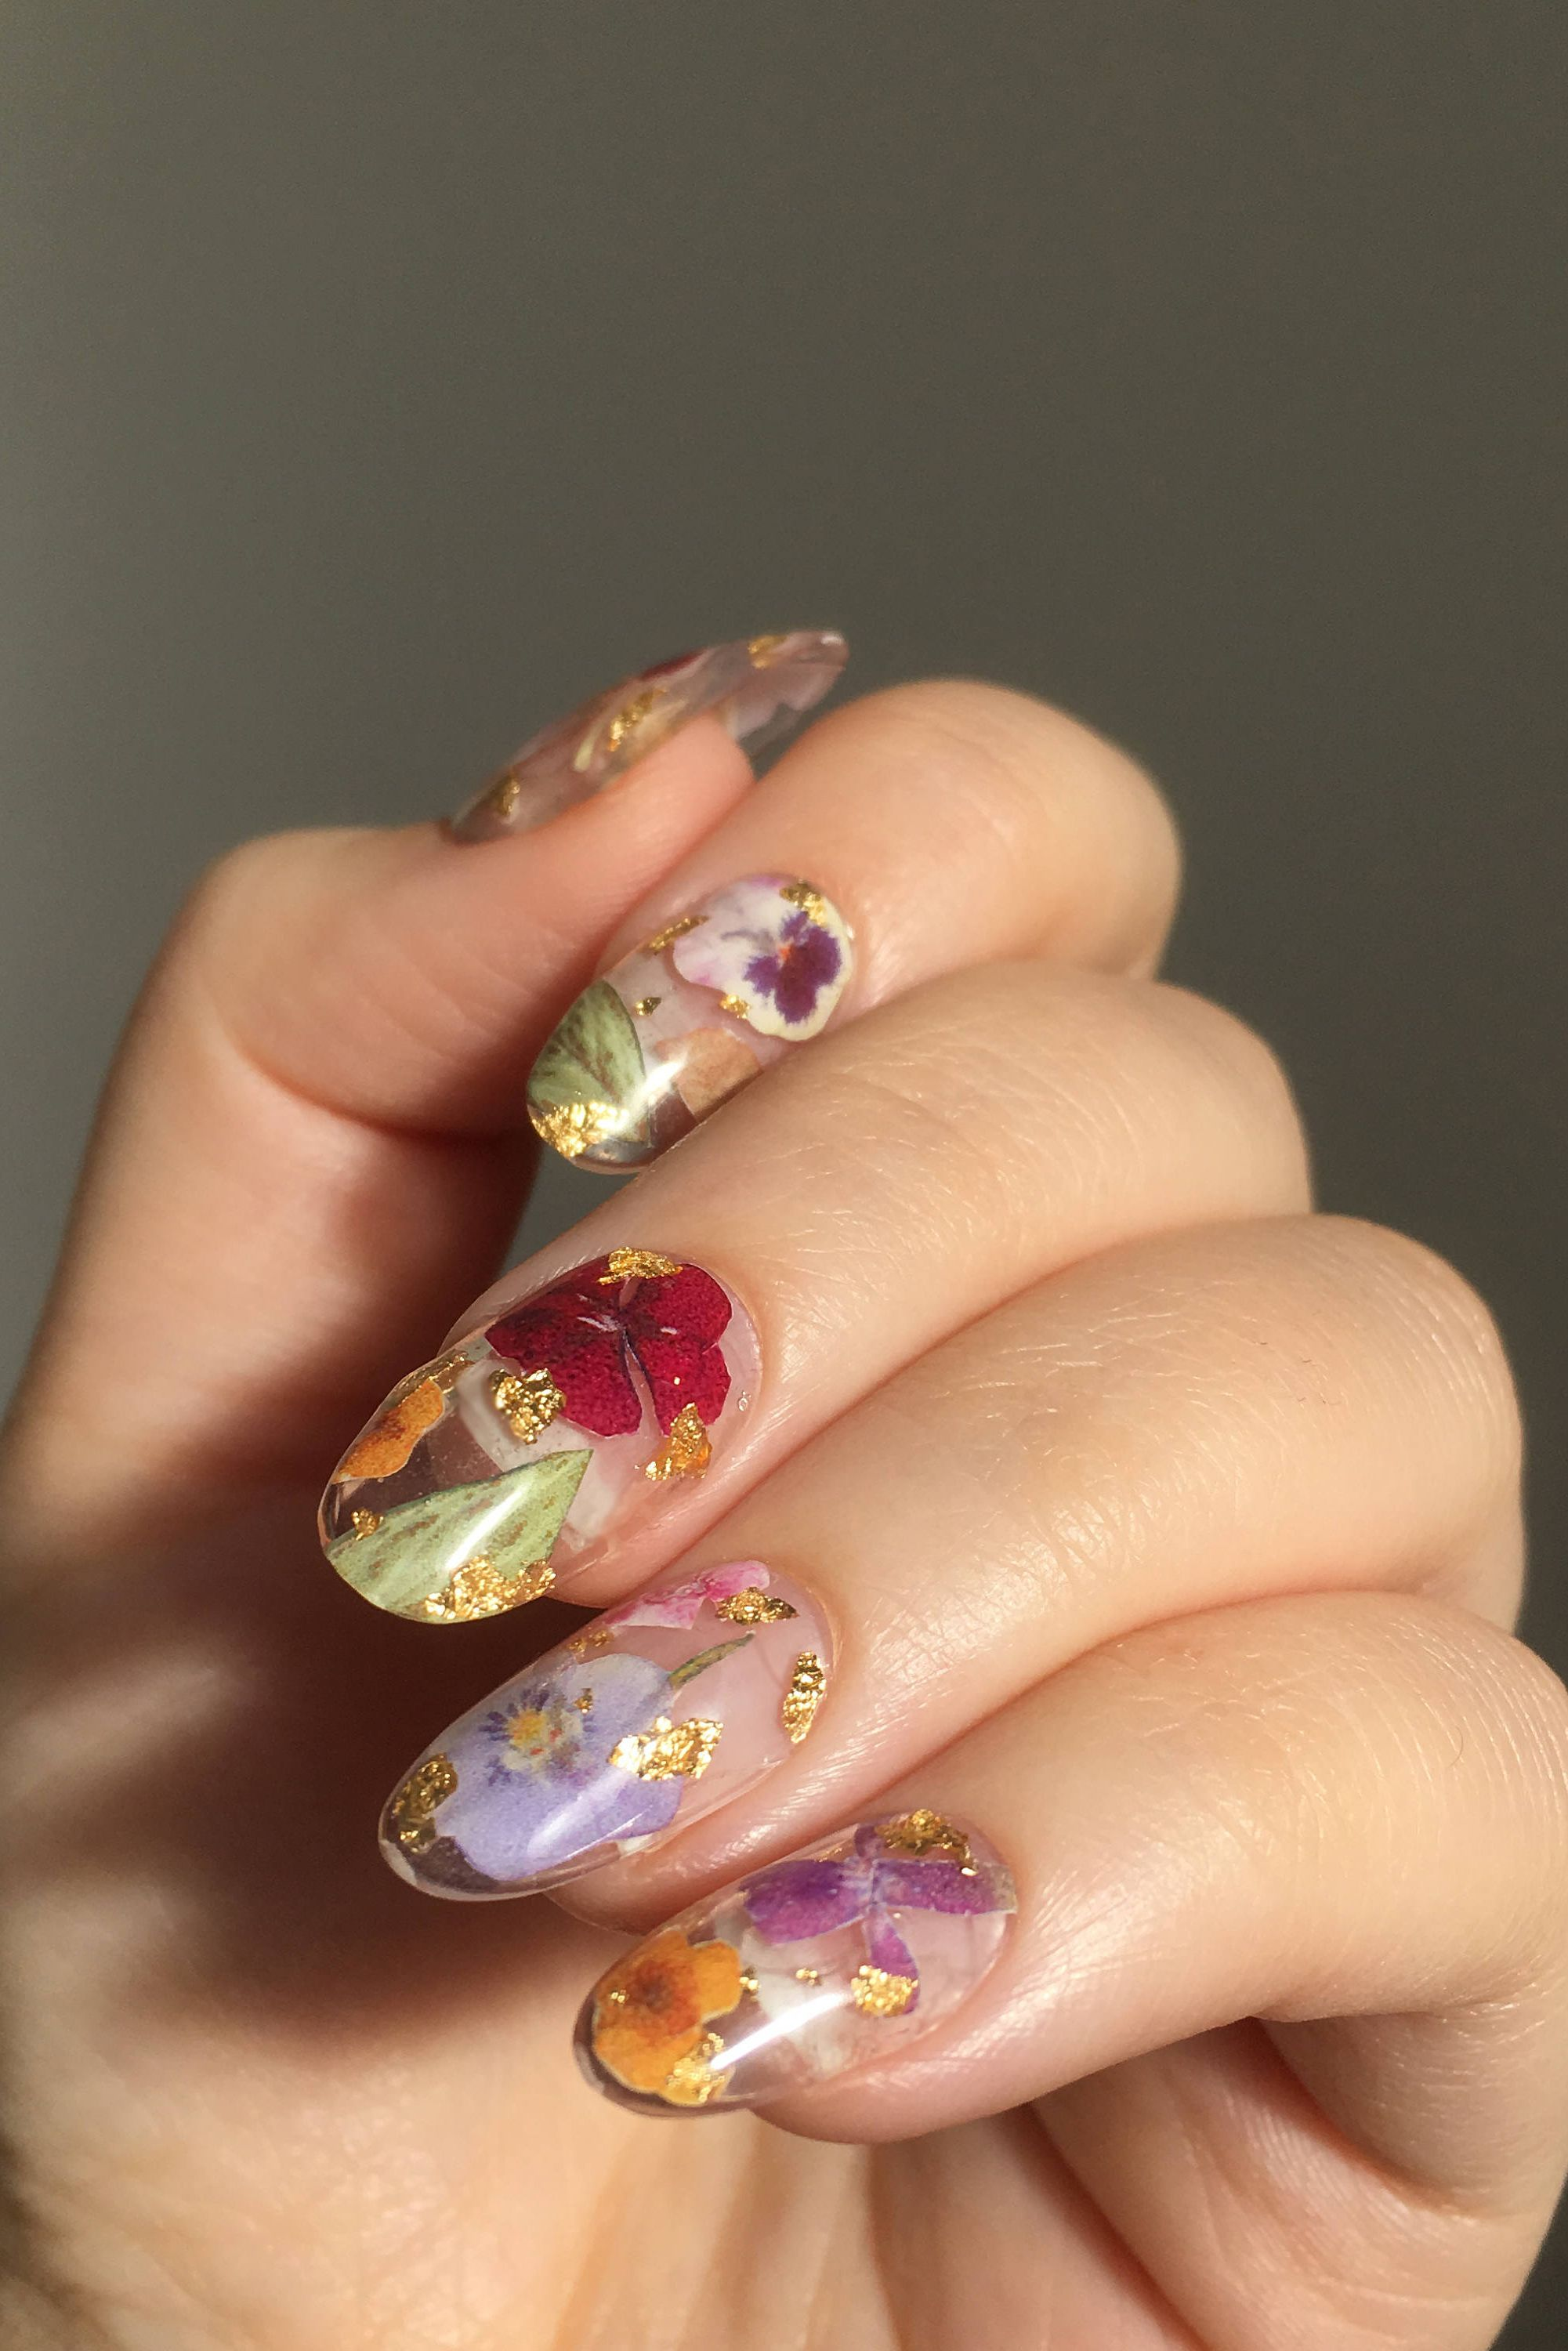 Reusable Pressed Dried Flowers Press On Nails Clear Base Gold Flake Cute Nail Art Designs Cute Nails Trendy Nails